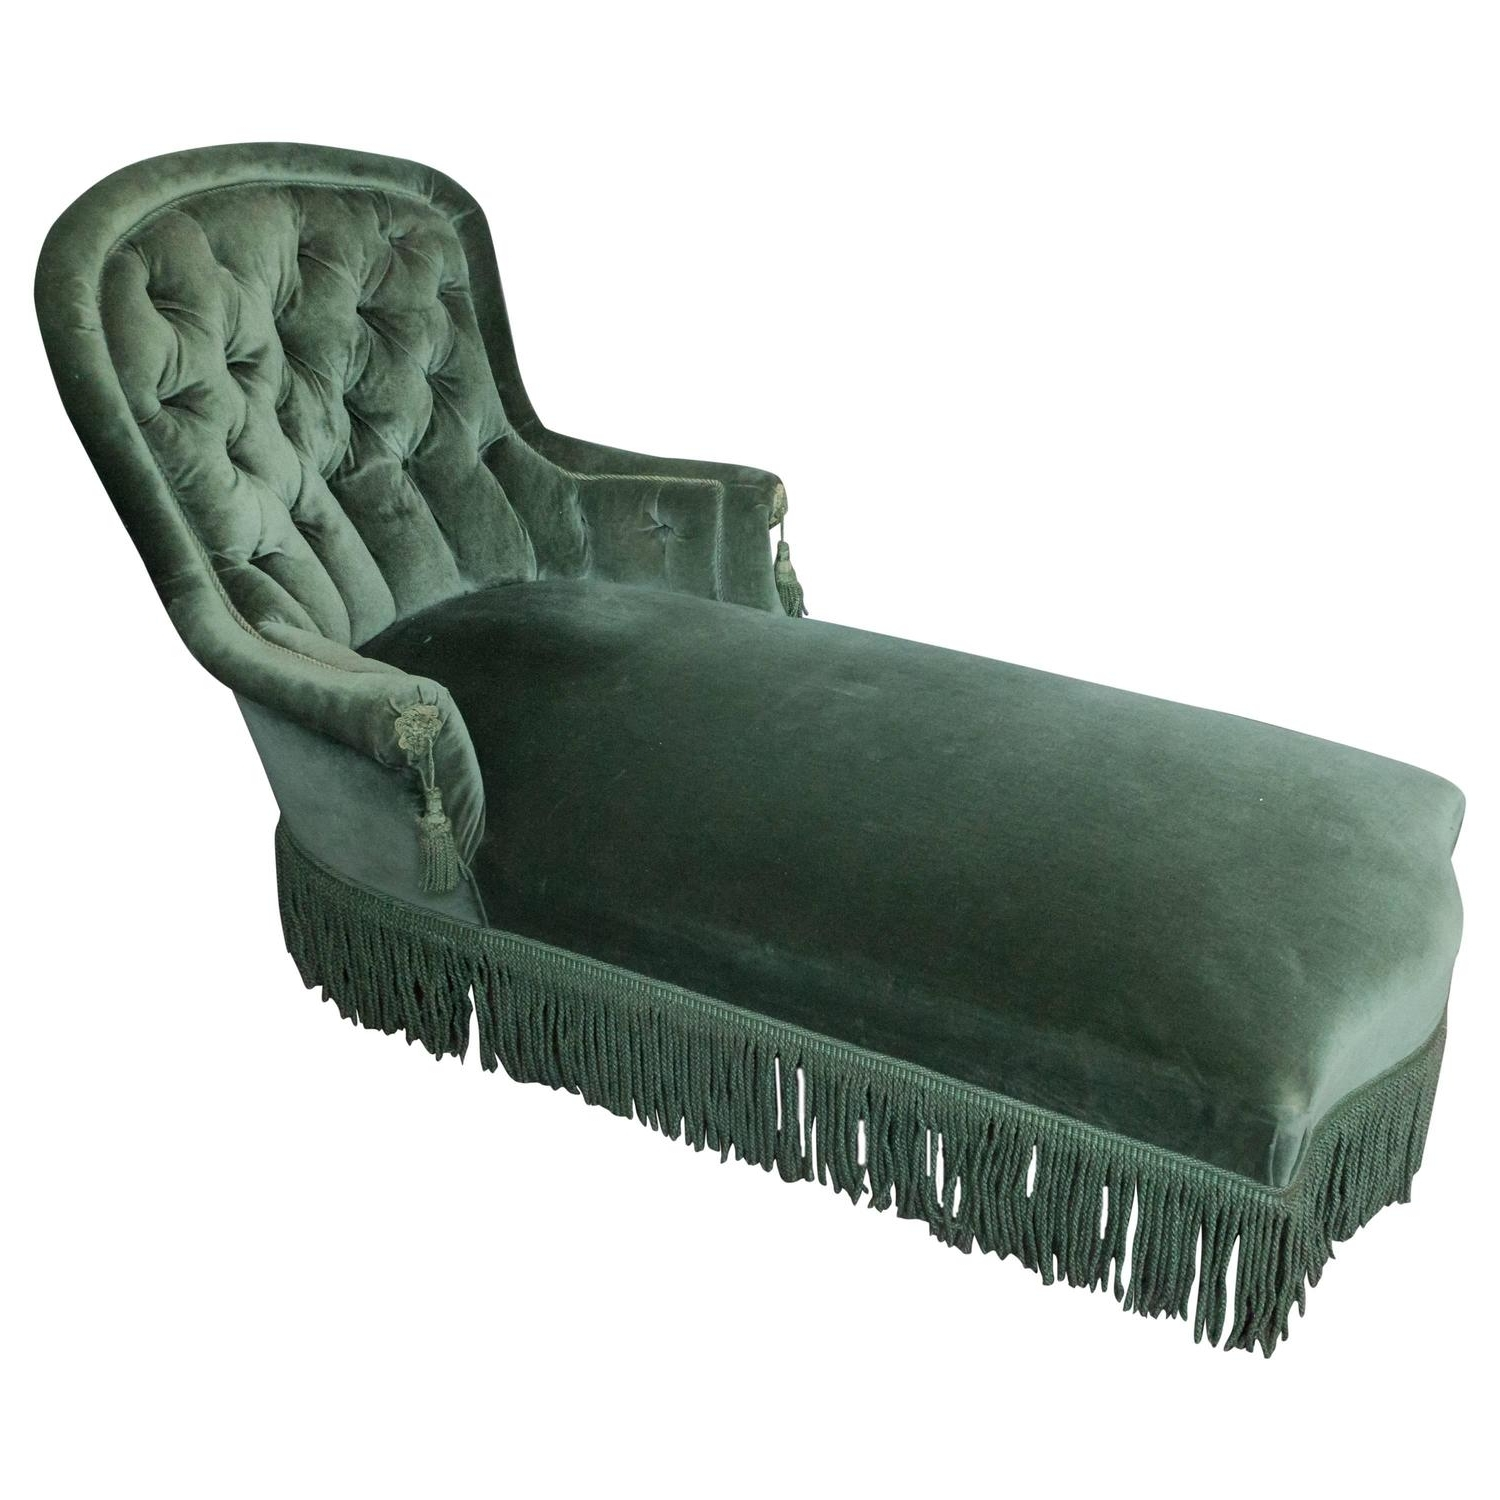 Green Chaise Lounges Pertaining To Well Liked Elegant French Chaise Longue In Green Velvet At 1Stdibs (View 4 of 15)